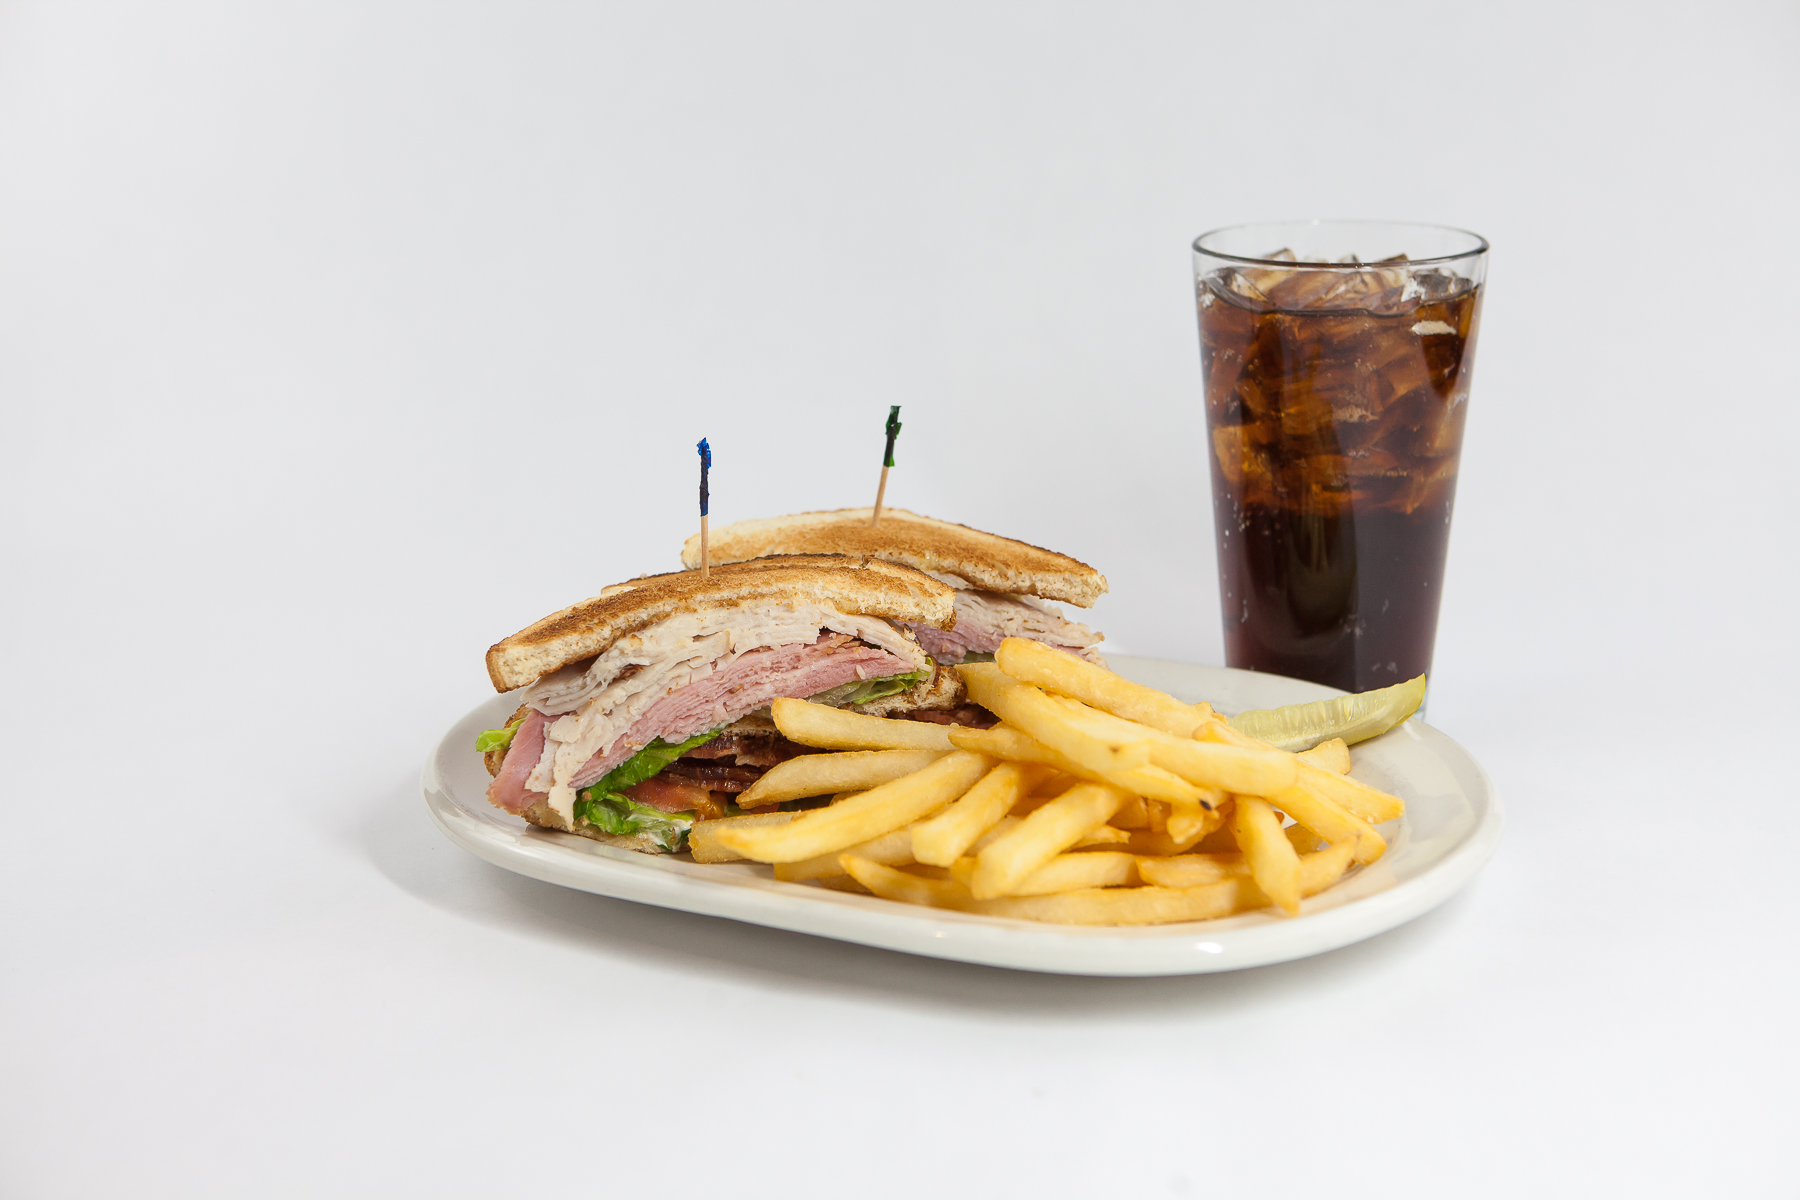 Food Photography for Tula's Northwoods Cafe - Turkey ham club sandwich and fries